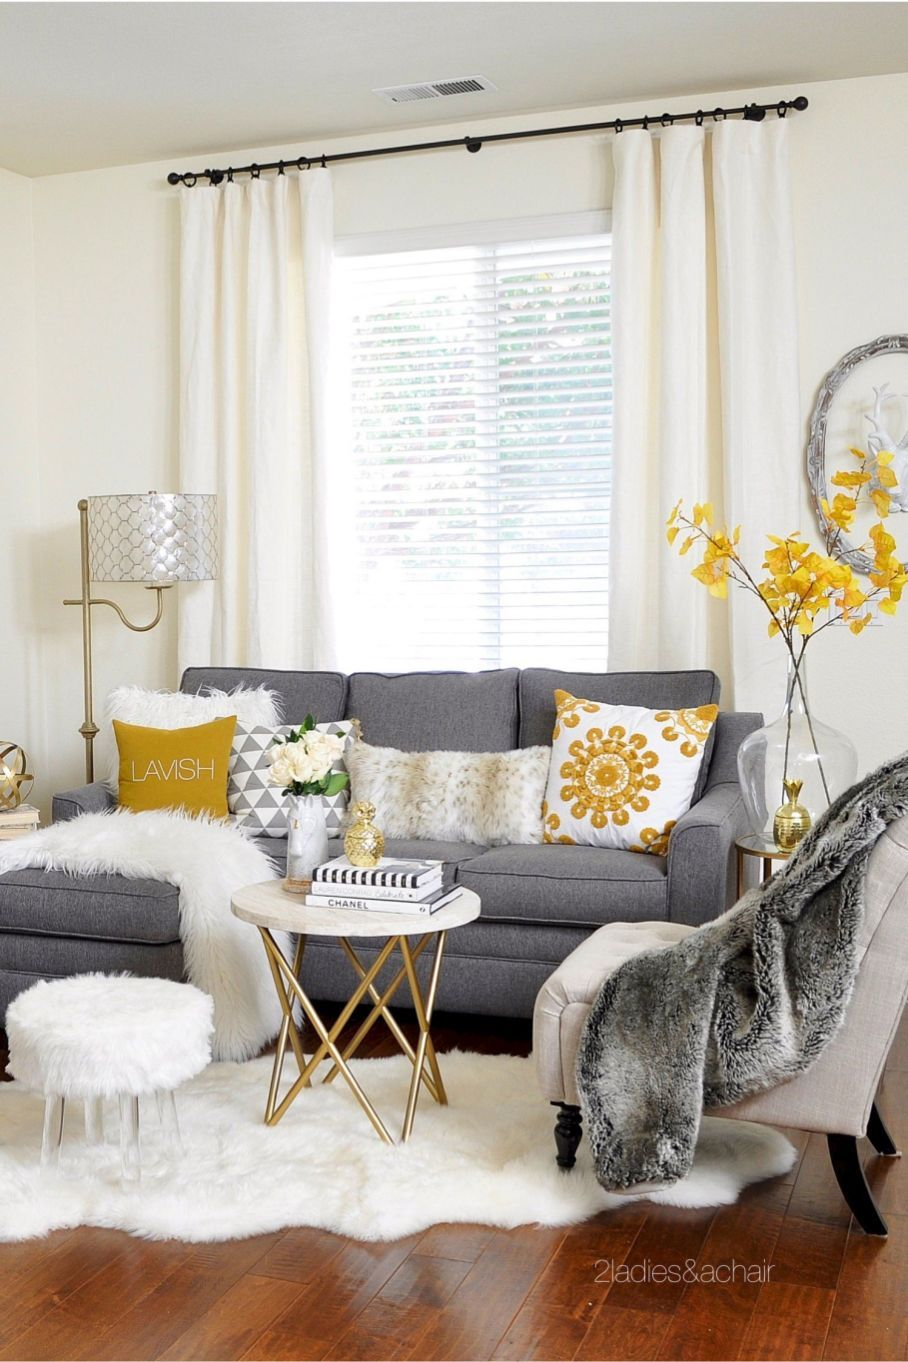 The Best Diy Apartment Small Living Room Ideas On A Budget 156 ...